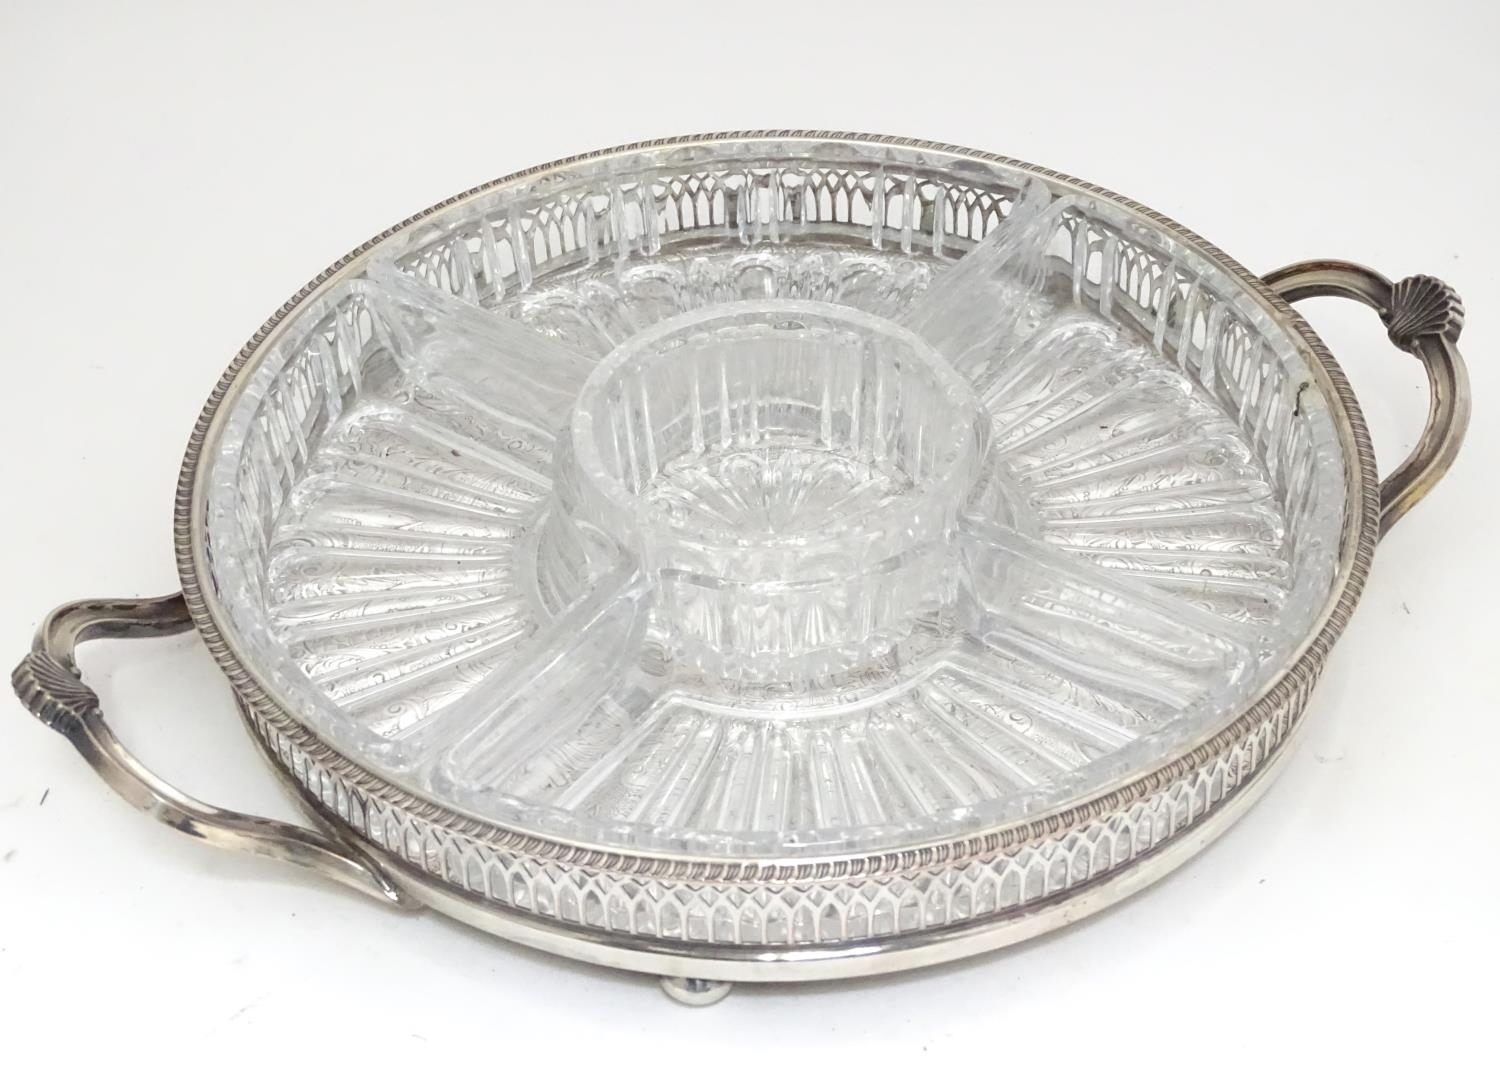 A silver plated entree dish with 5 inset glass sections Please Note - we do not make reference to